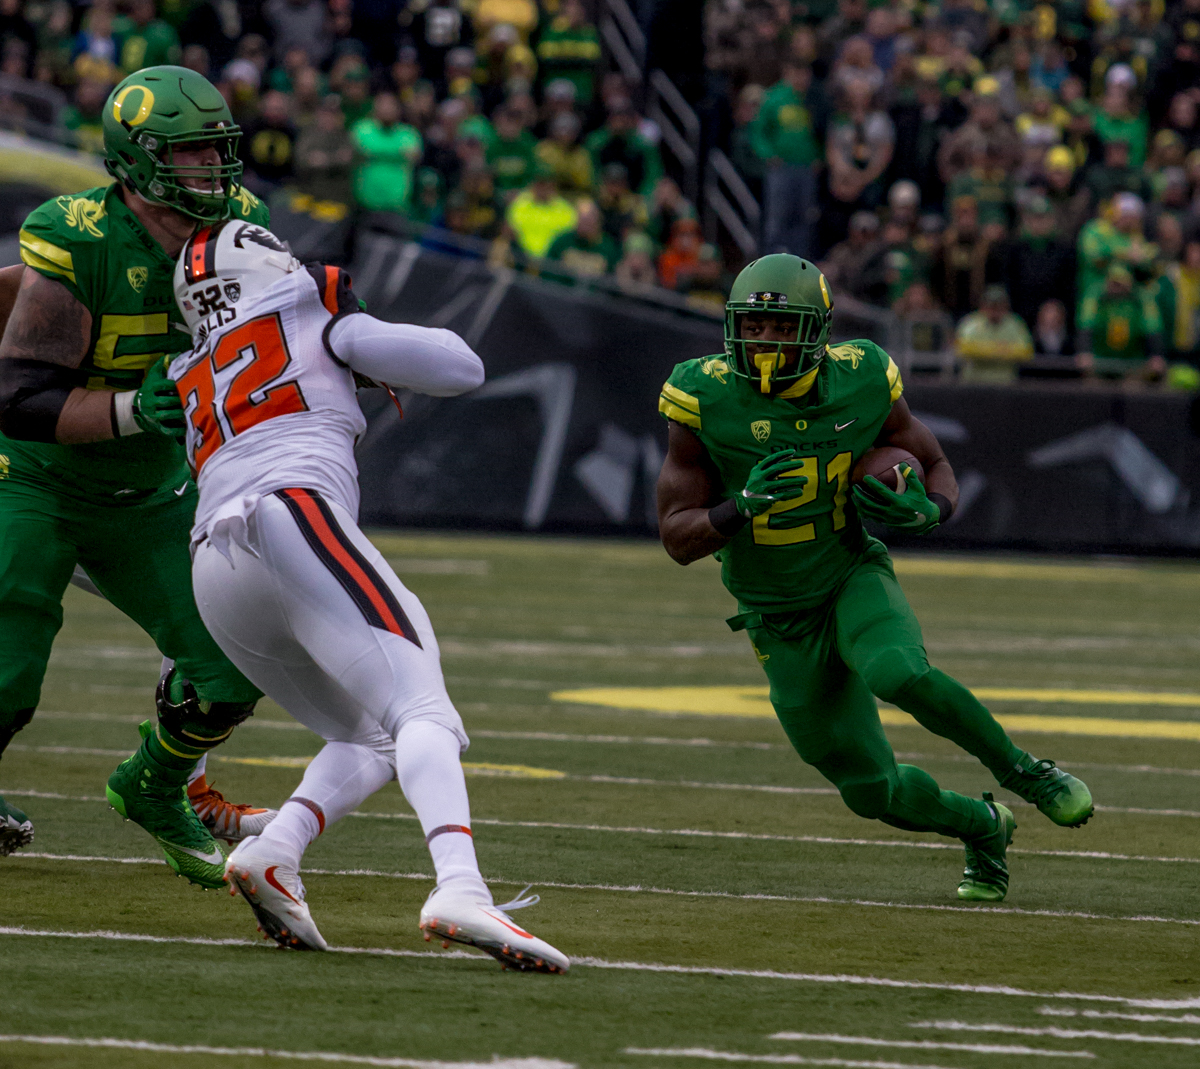 Oregon running back Royce Freeman (#21) runs up the field during the first half. The Oregon Ducks lead the Oregon State Beavers 52 to 7 at the end of the first half of the 121st Civil War game on Saturday, November 25, 2017 at Autzen Stadium in Eugene, Ore. Photo by Ben Lonergan, Oregon News Lab